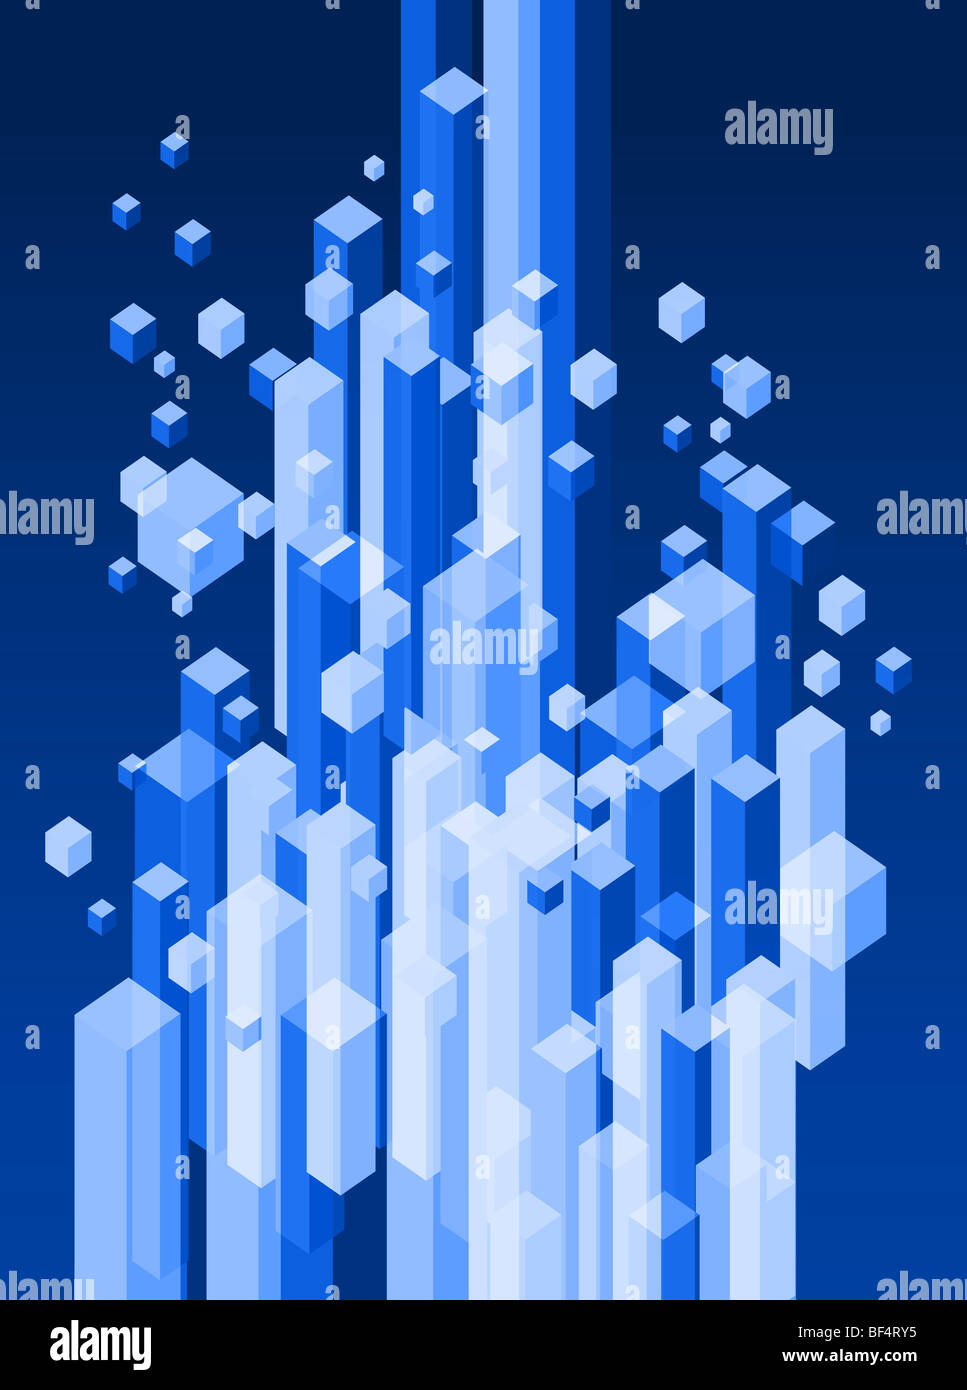 Abstract 3d illustration of blue blocks background | Stock Photo ...